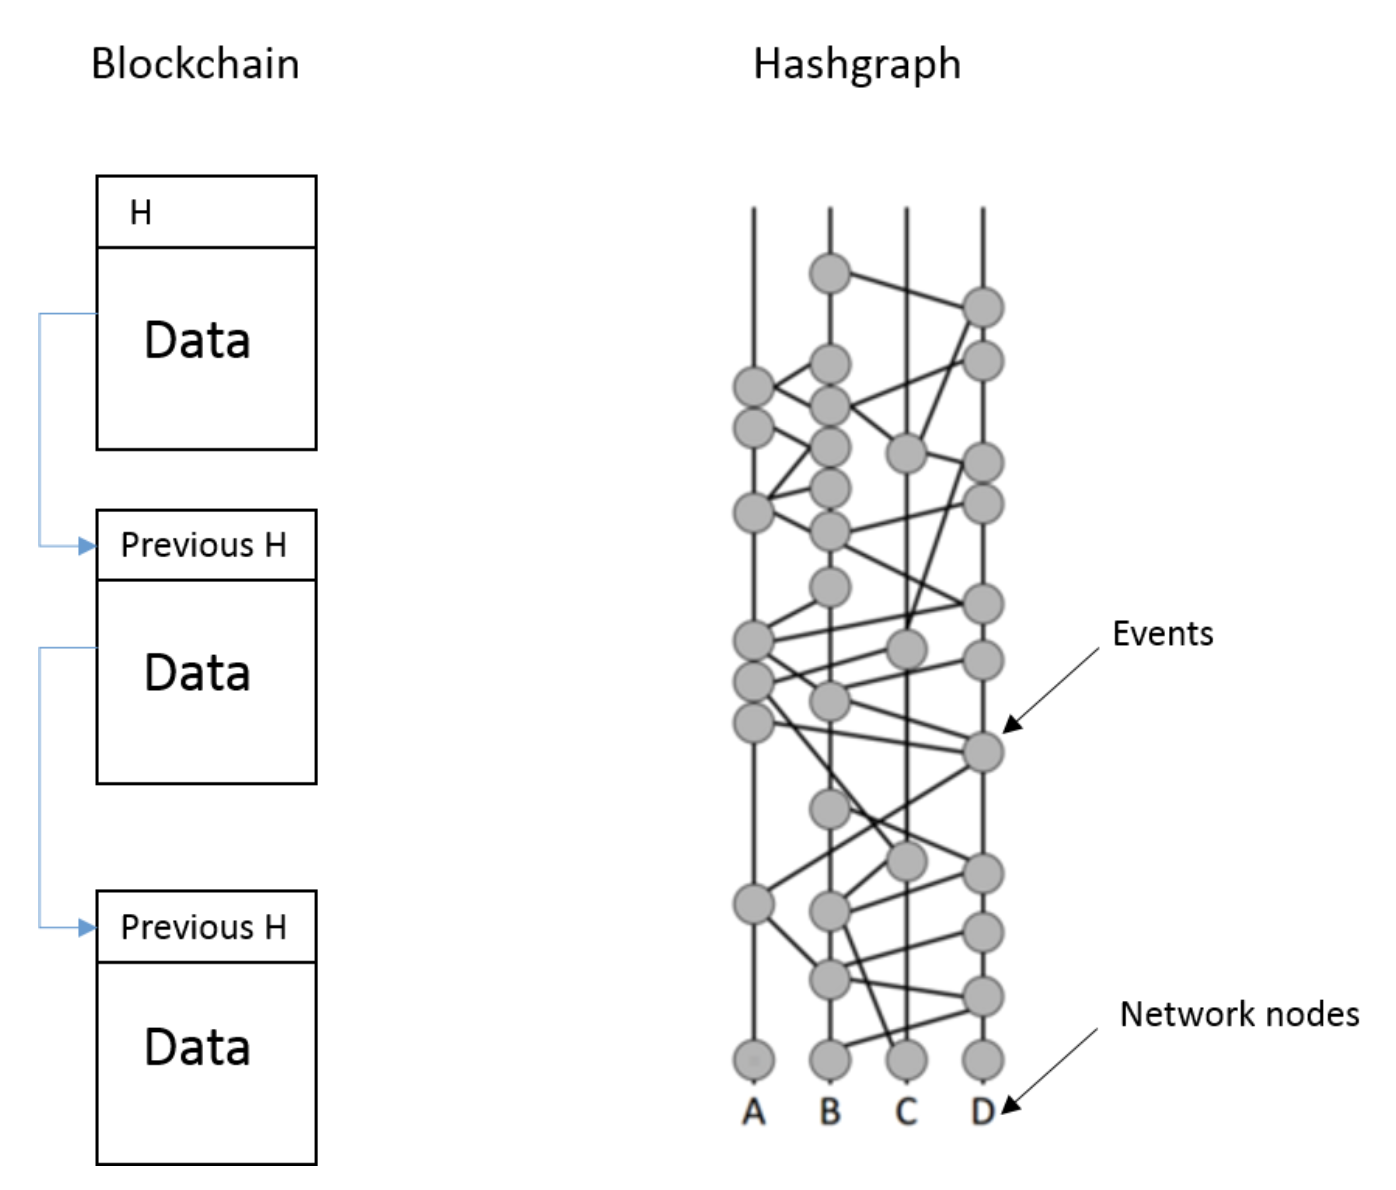 Hedera Hashgraph vs Blockchain vs Tangle Network structure